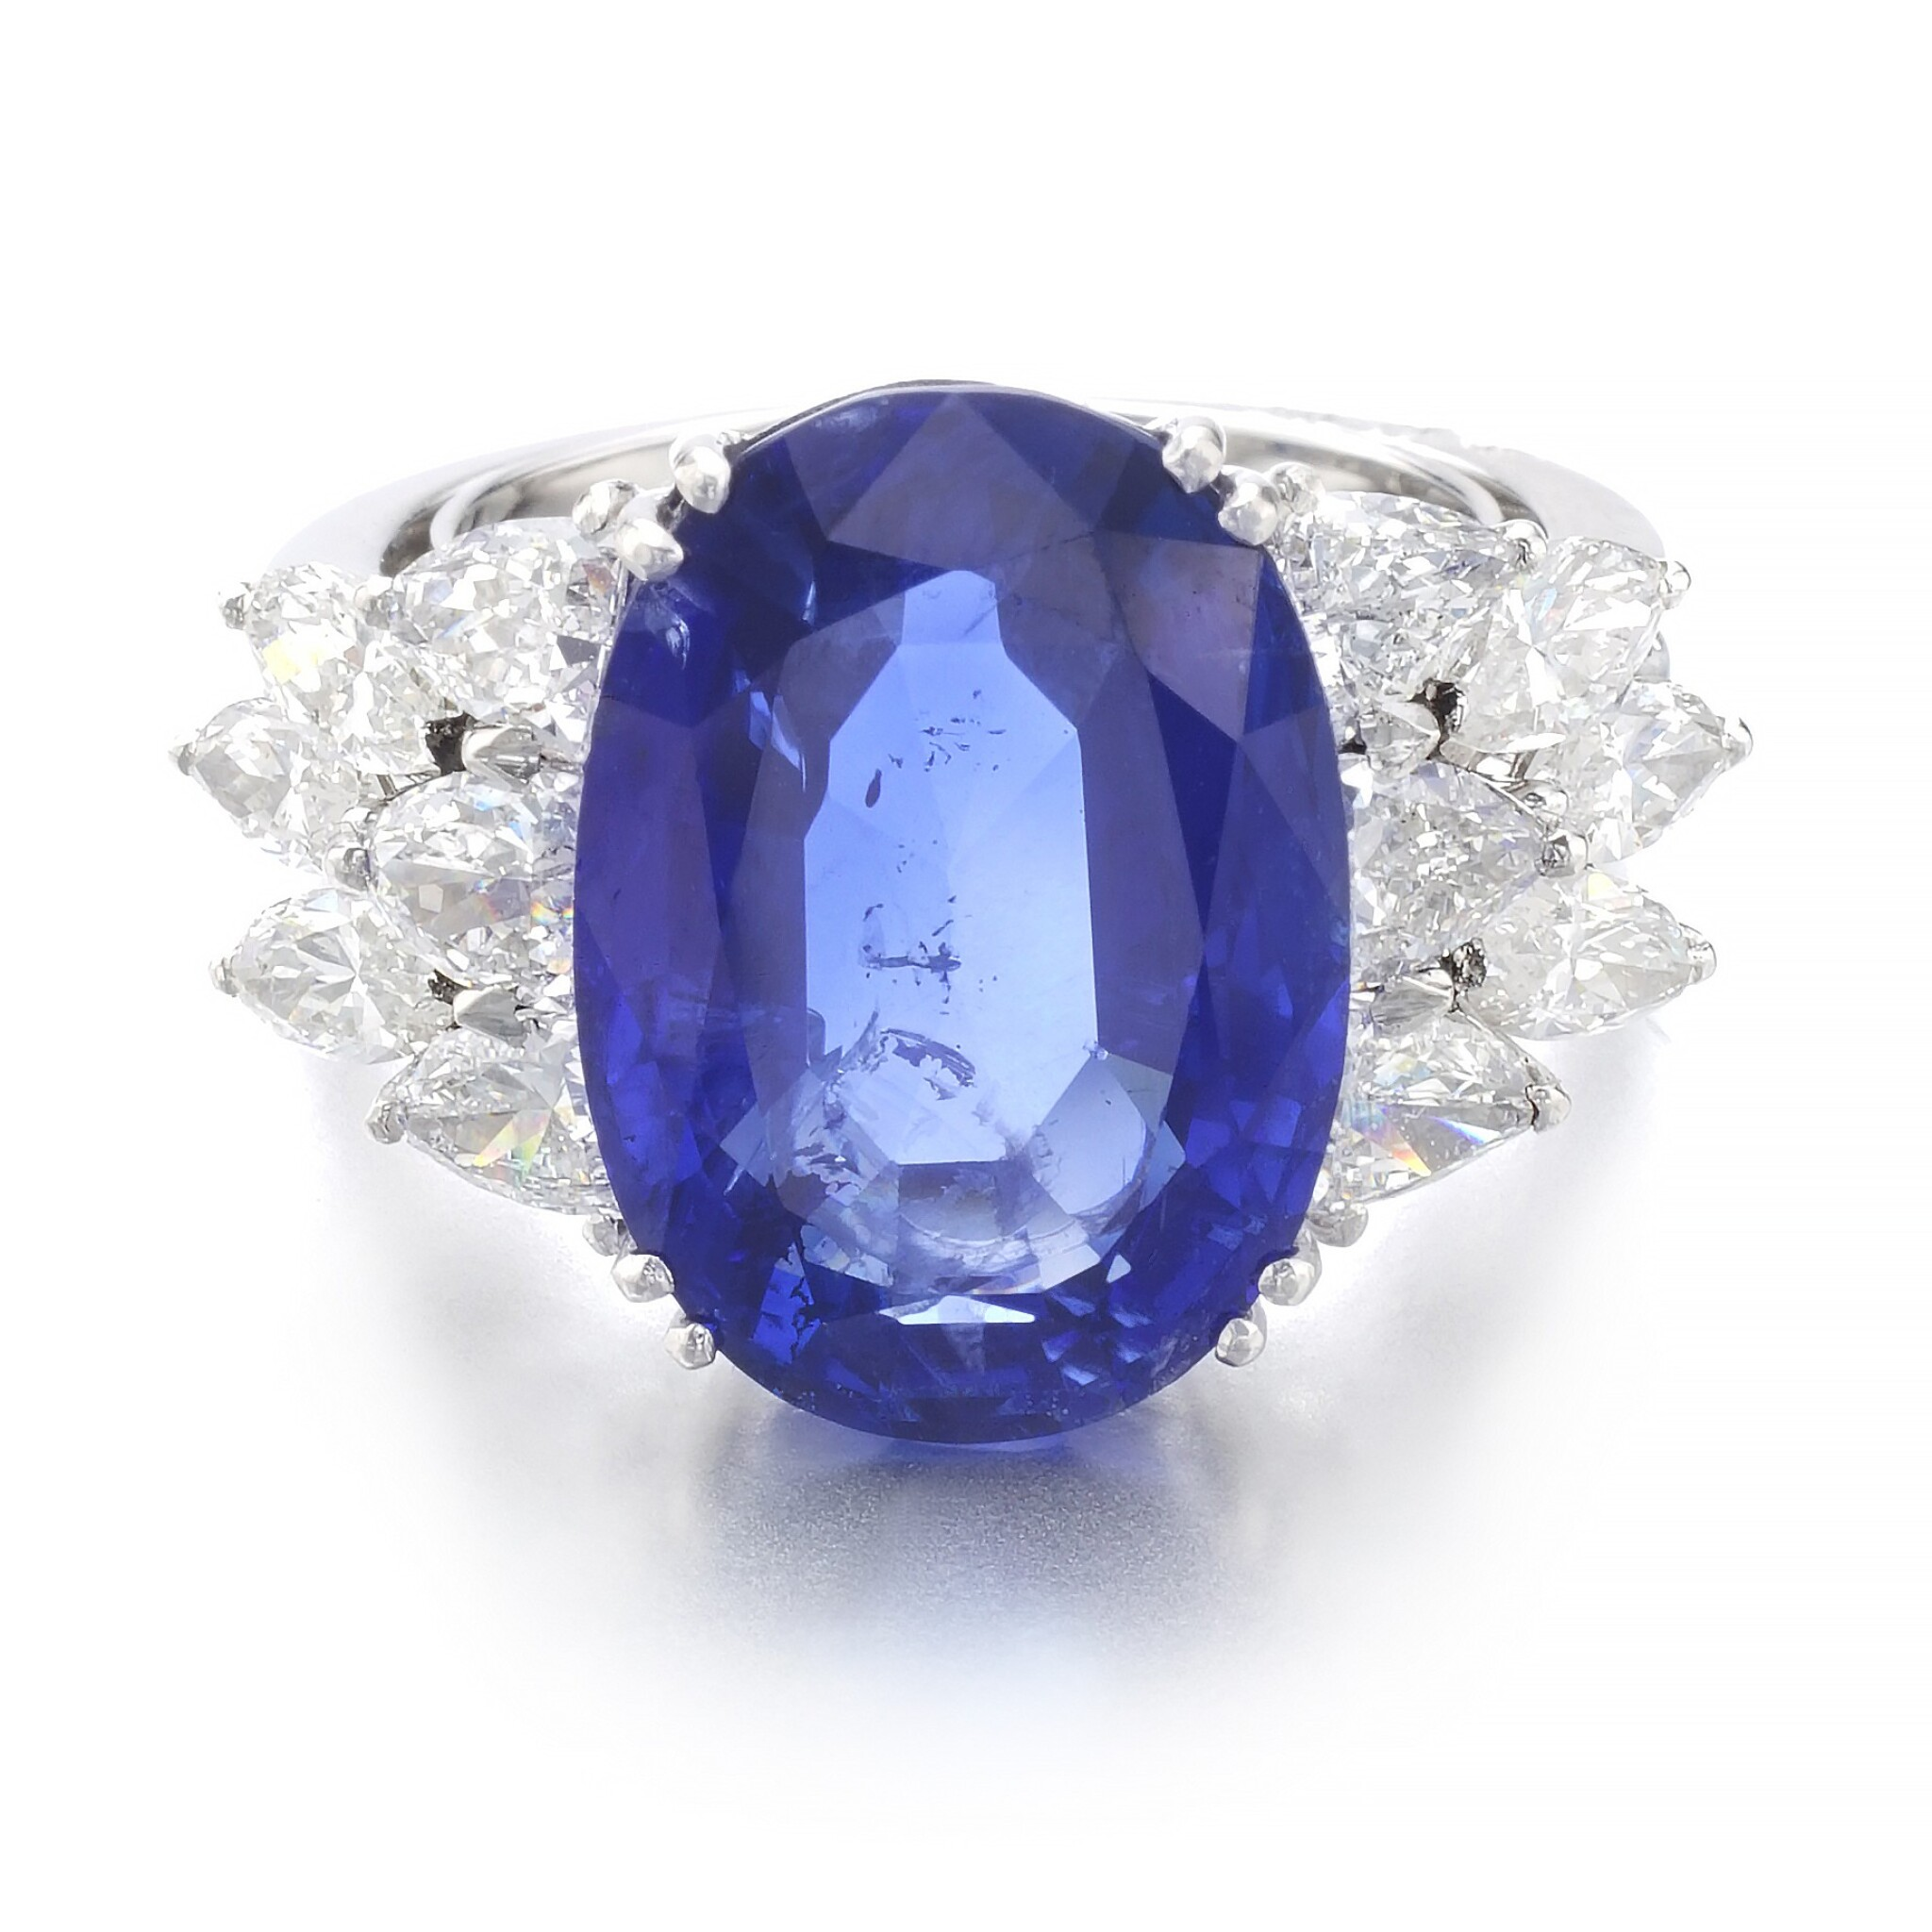 View 1 of Lot 1015. Sapphire and diamond ring.